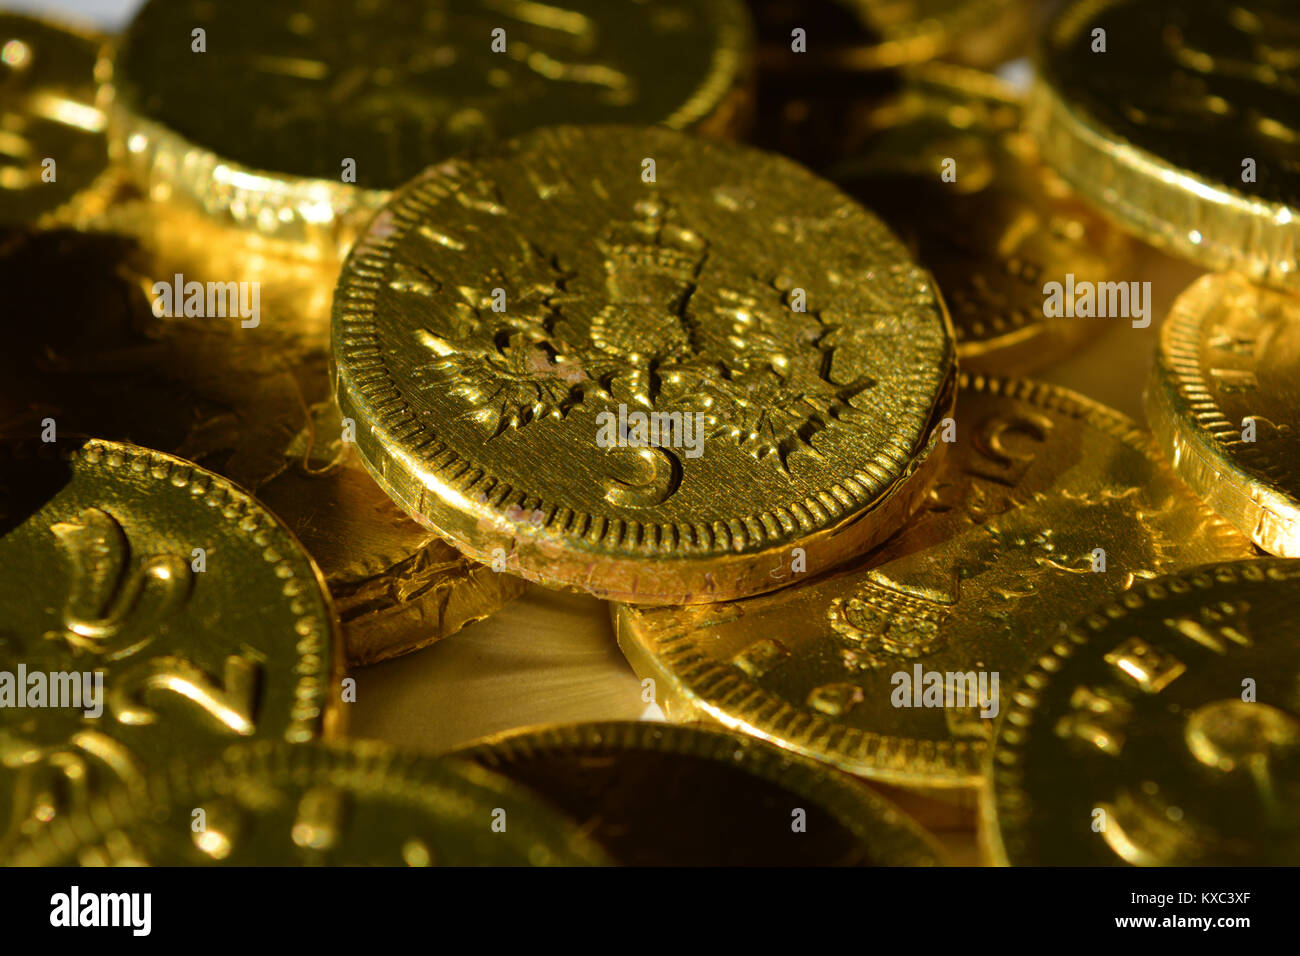 Chocolate money stock photos chocolate money stock images alamy chocolate coins wrapped in gold foil a traditional british christmas gift stock image spiritdancerdesigns Image collections